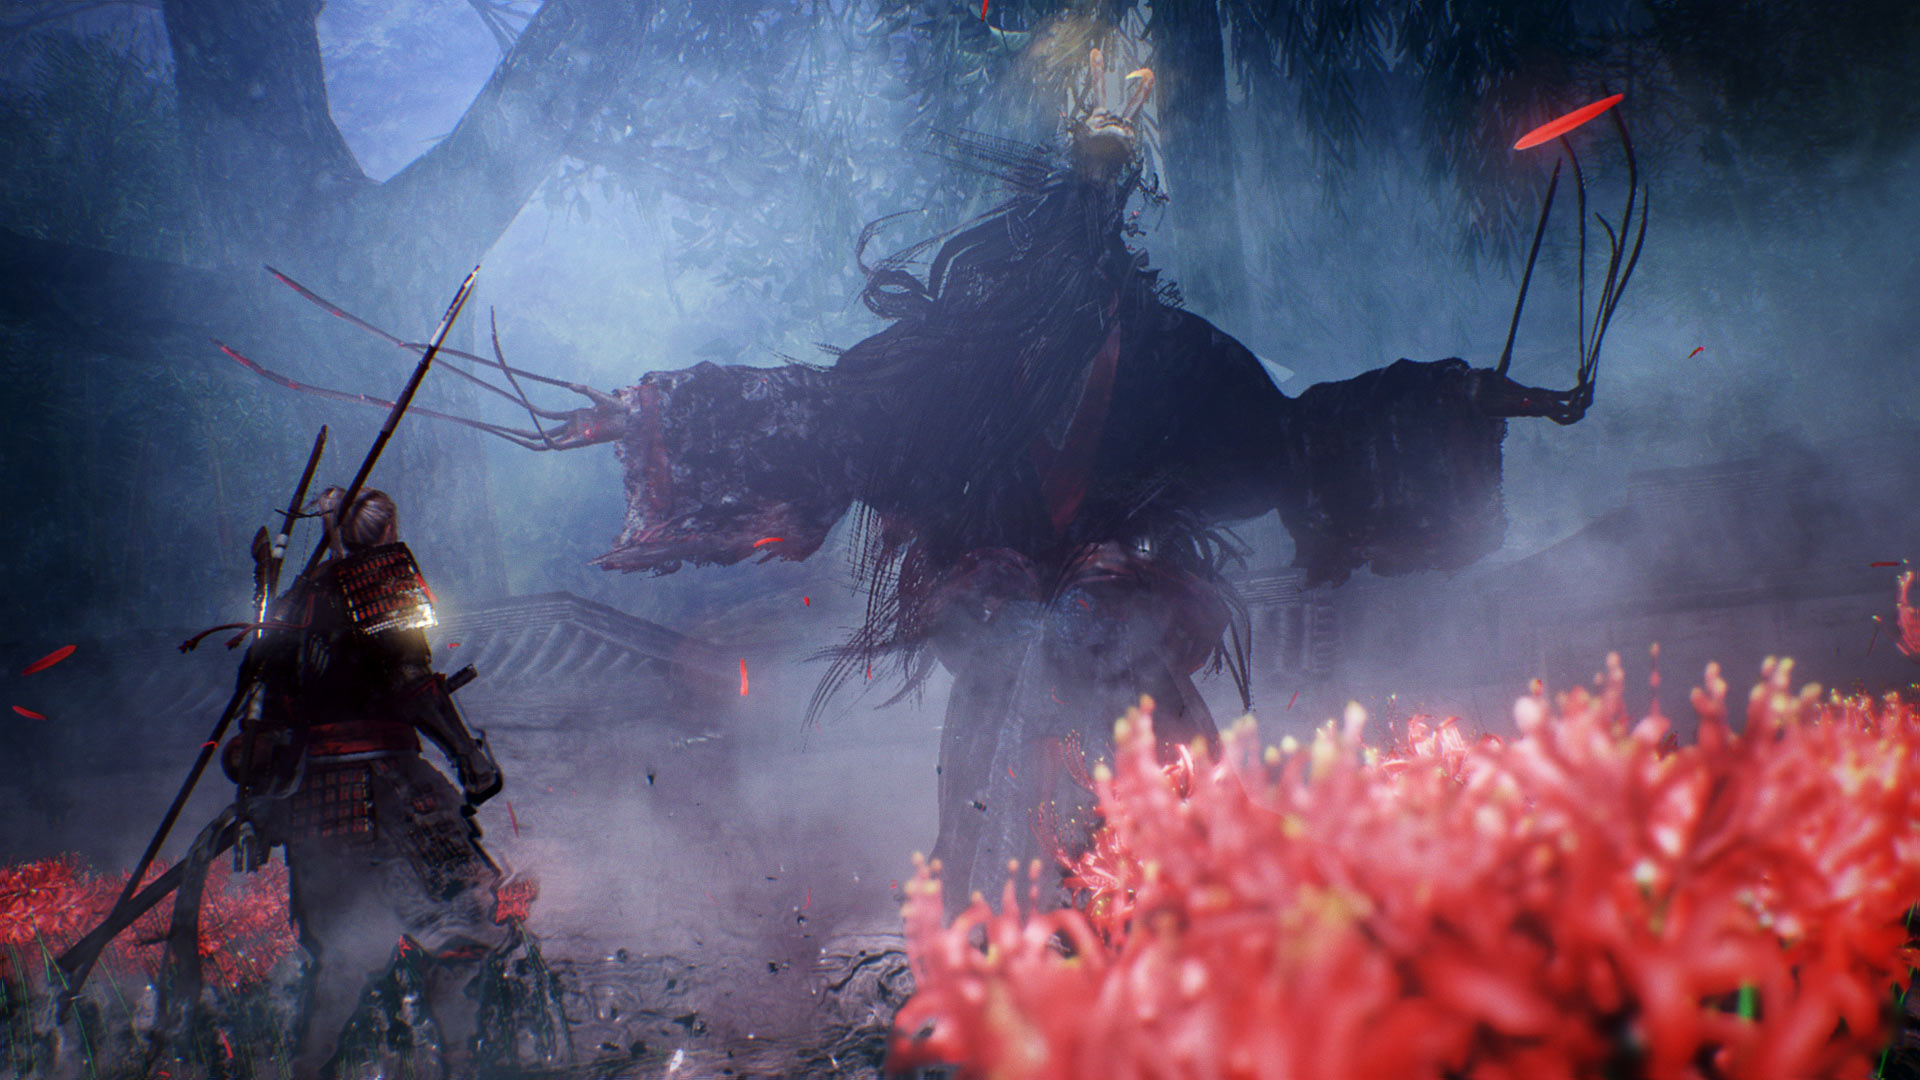 Team Ninja's PS4 action game Nioh gets last chance trial this